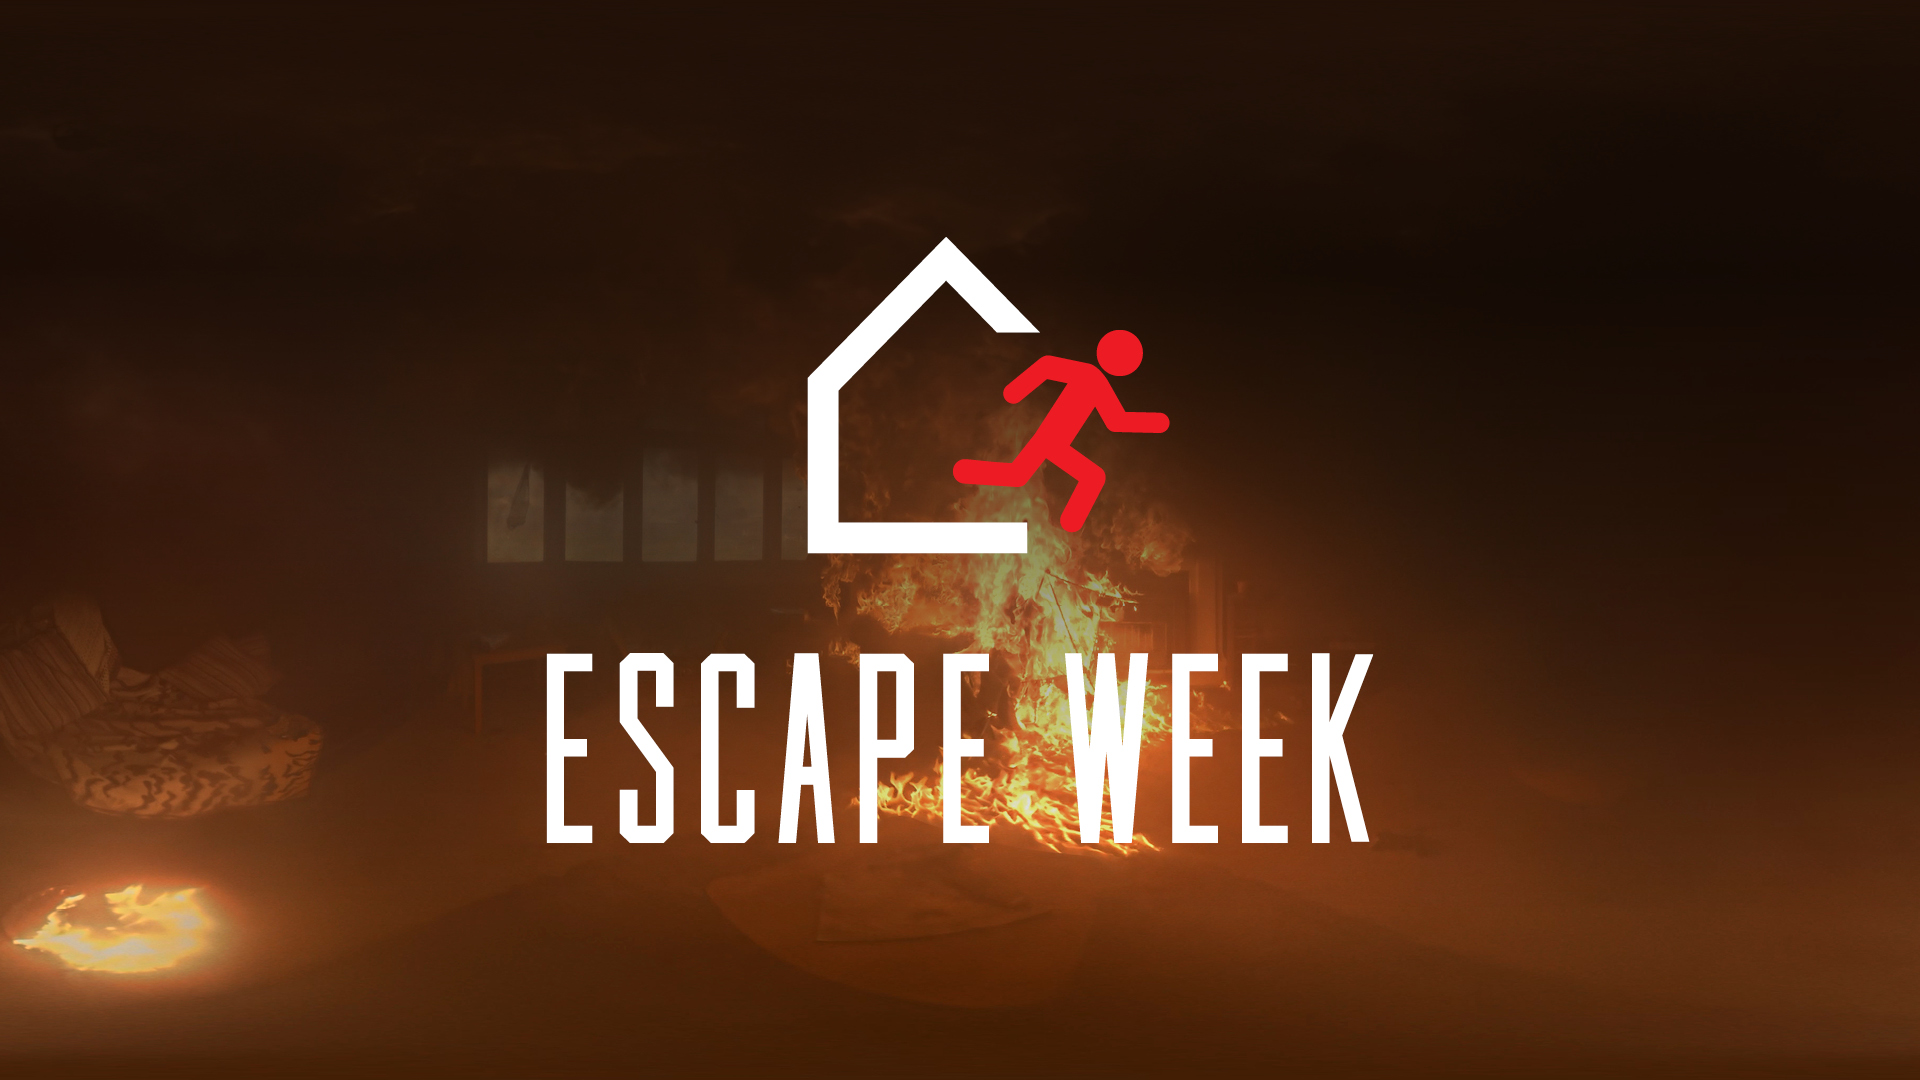 Fire and Emergency New Zealand launch integrated 'Escape Week' campaign via FCB NZ